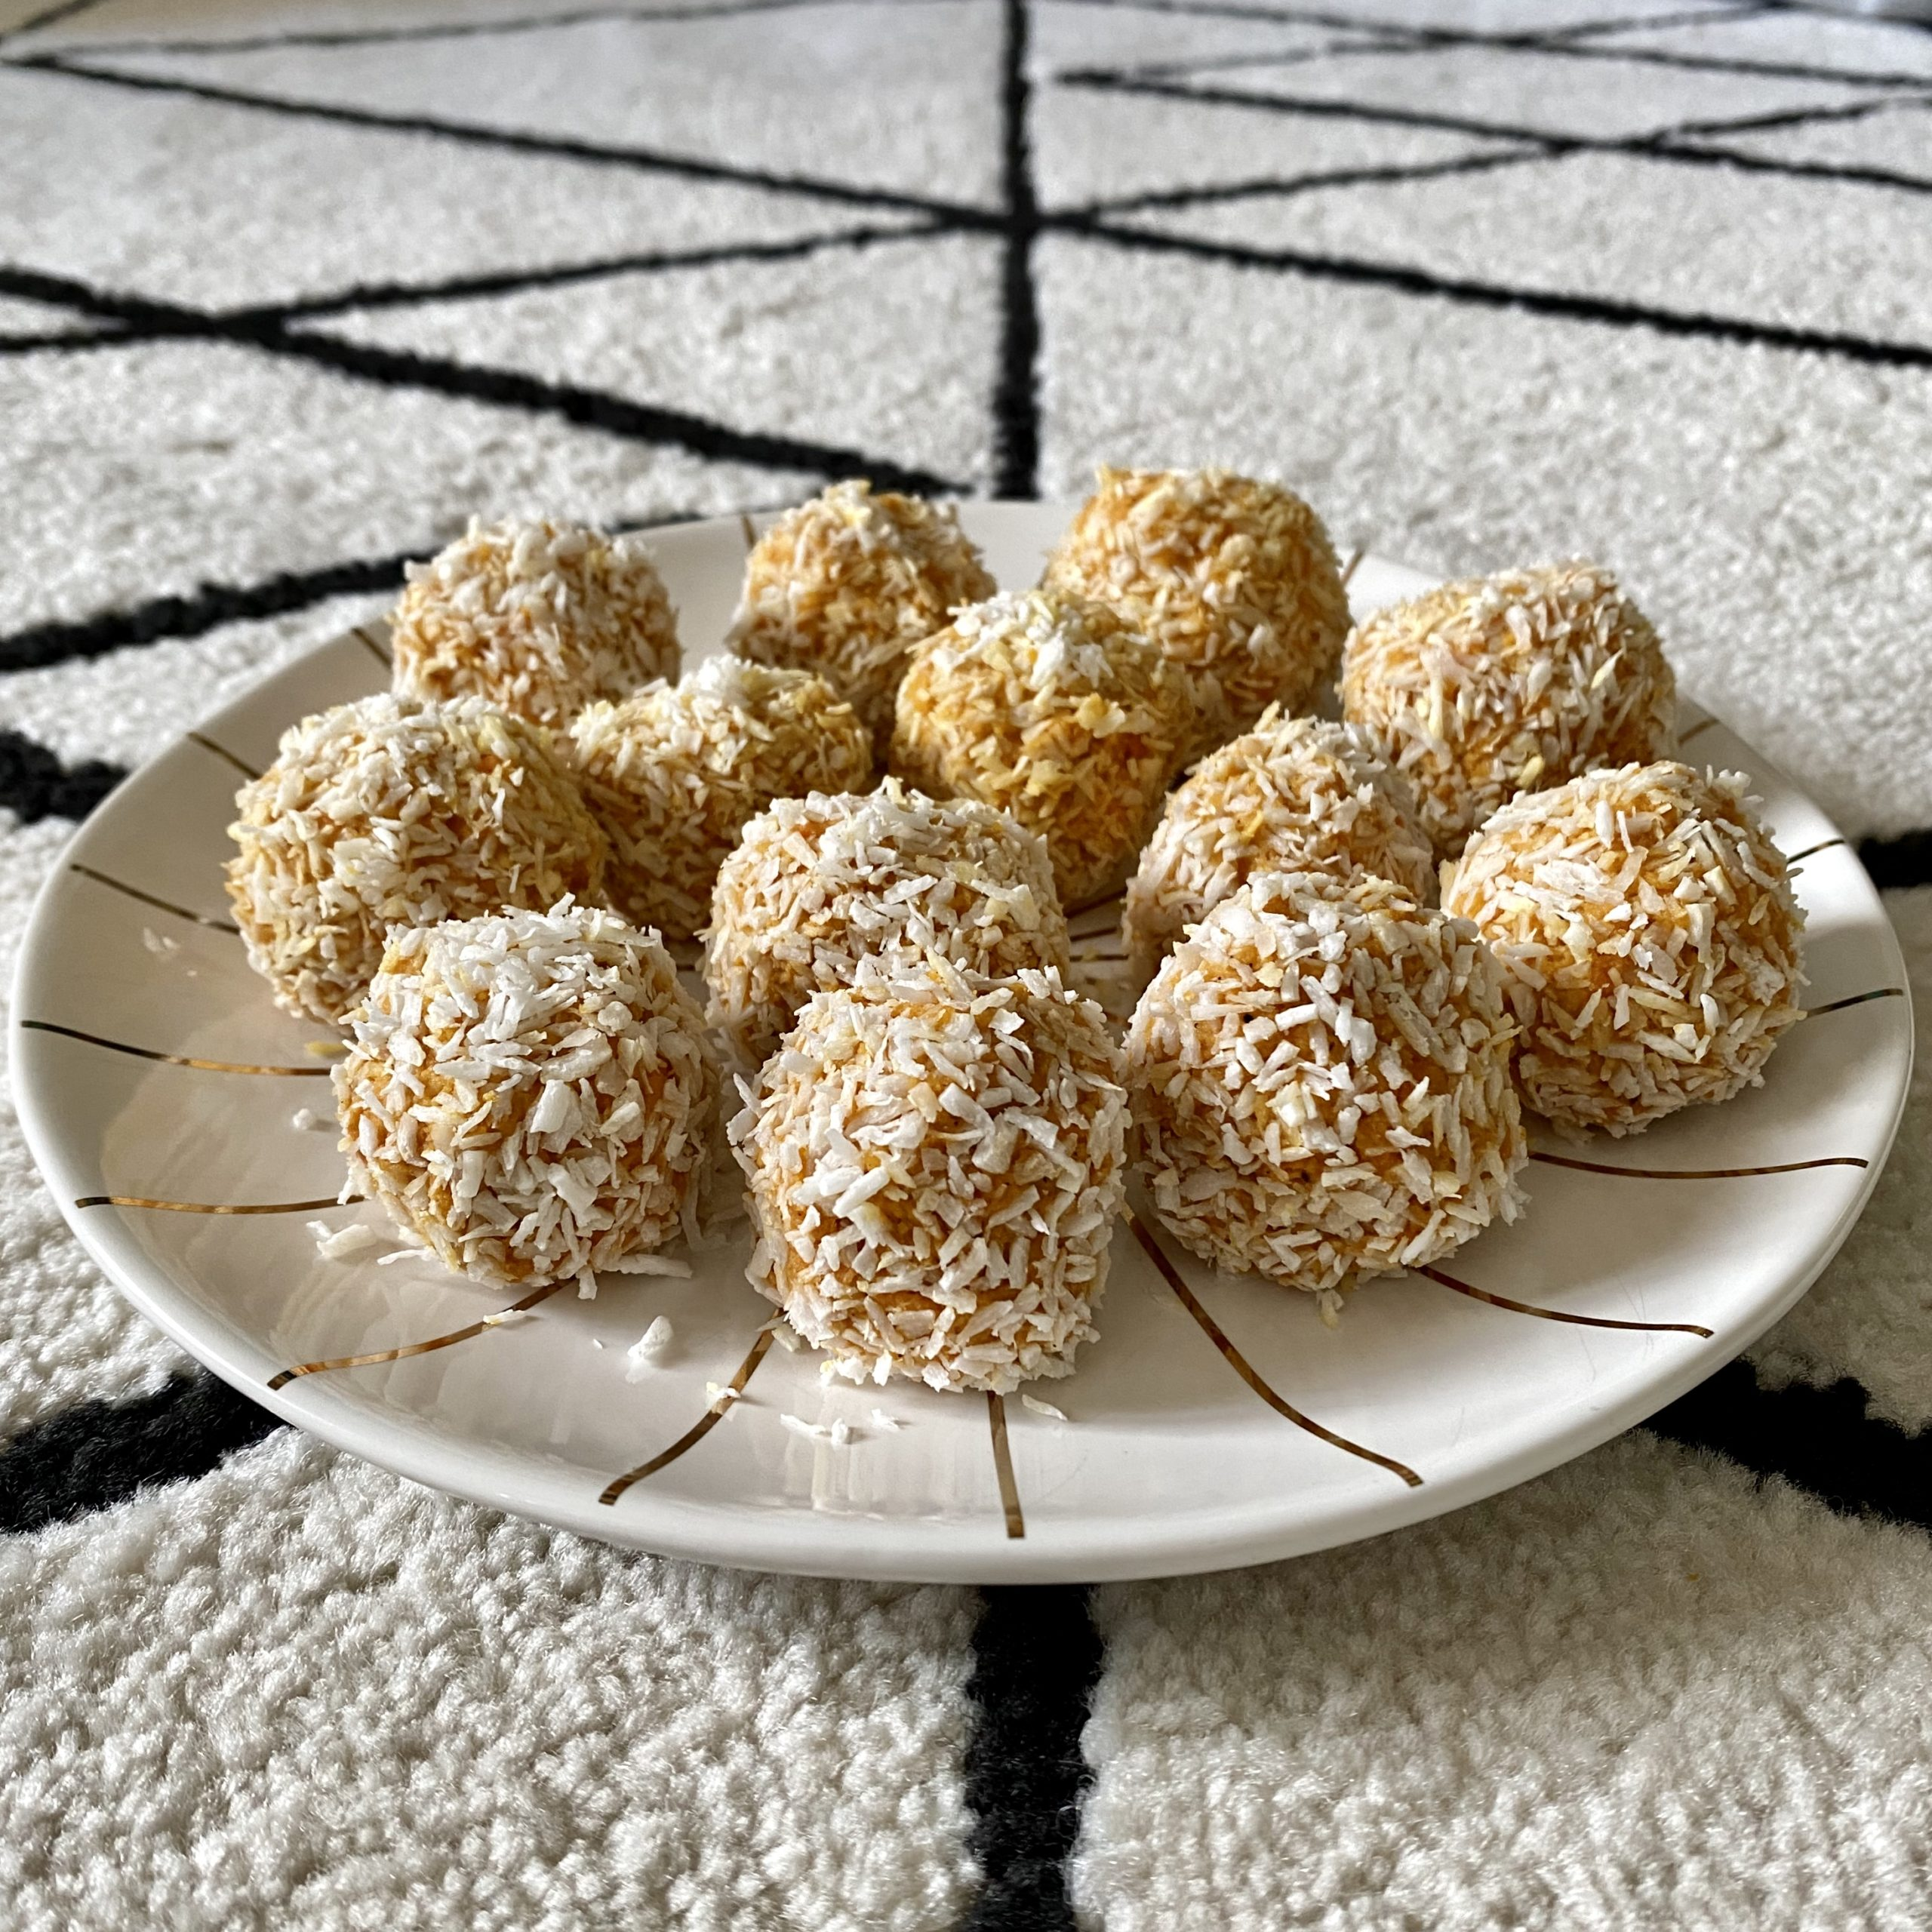 IMG 5289 scaled - Coconut-carrot energy balls for a snack